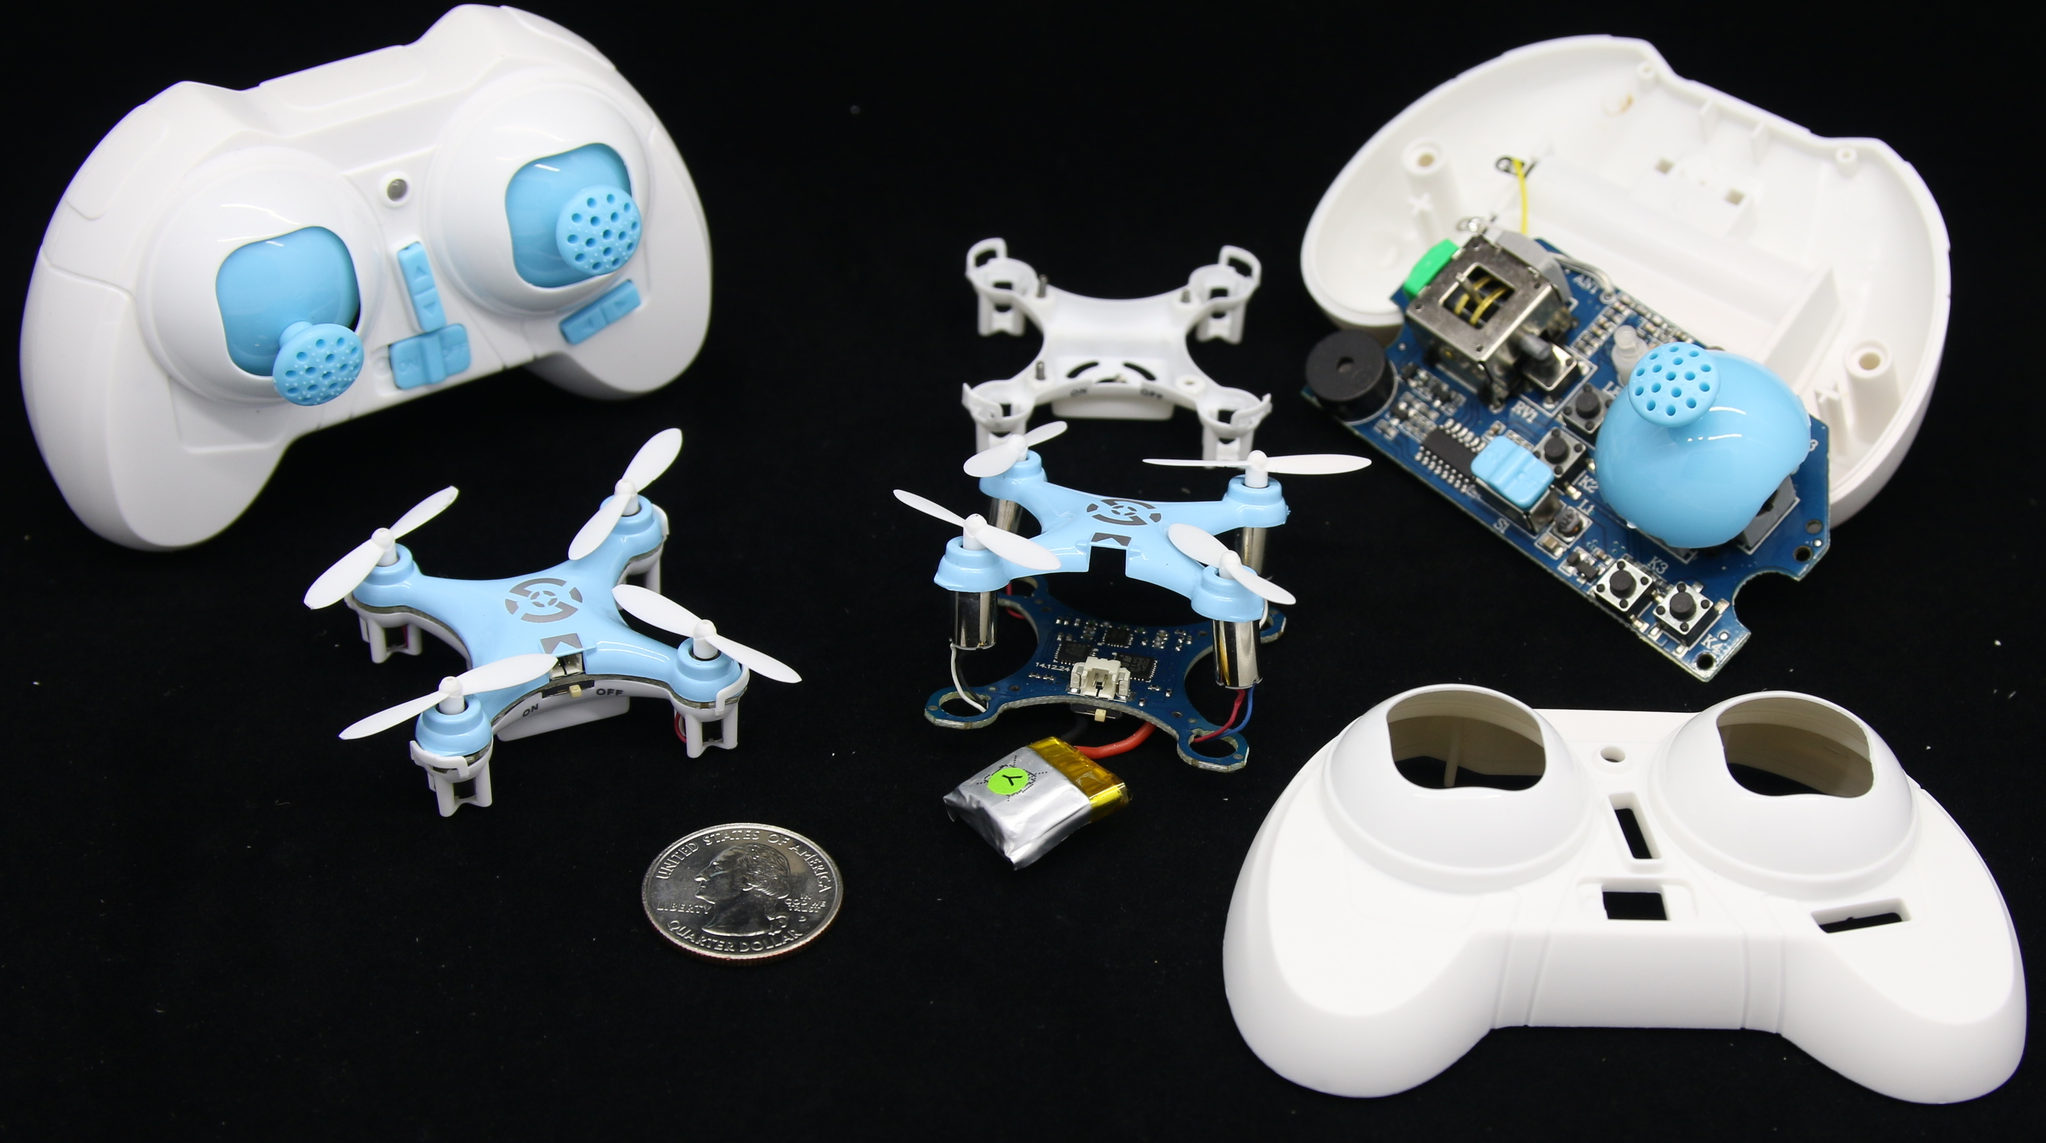 Figure 1-5: Cheerson CX-10C miniature quadcopter in before and after states.